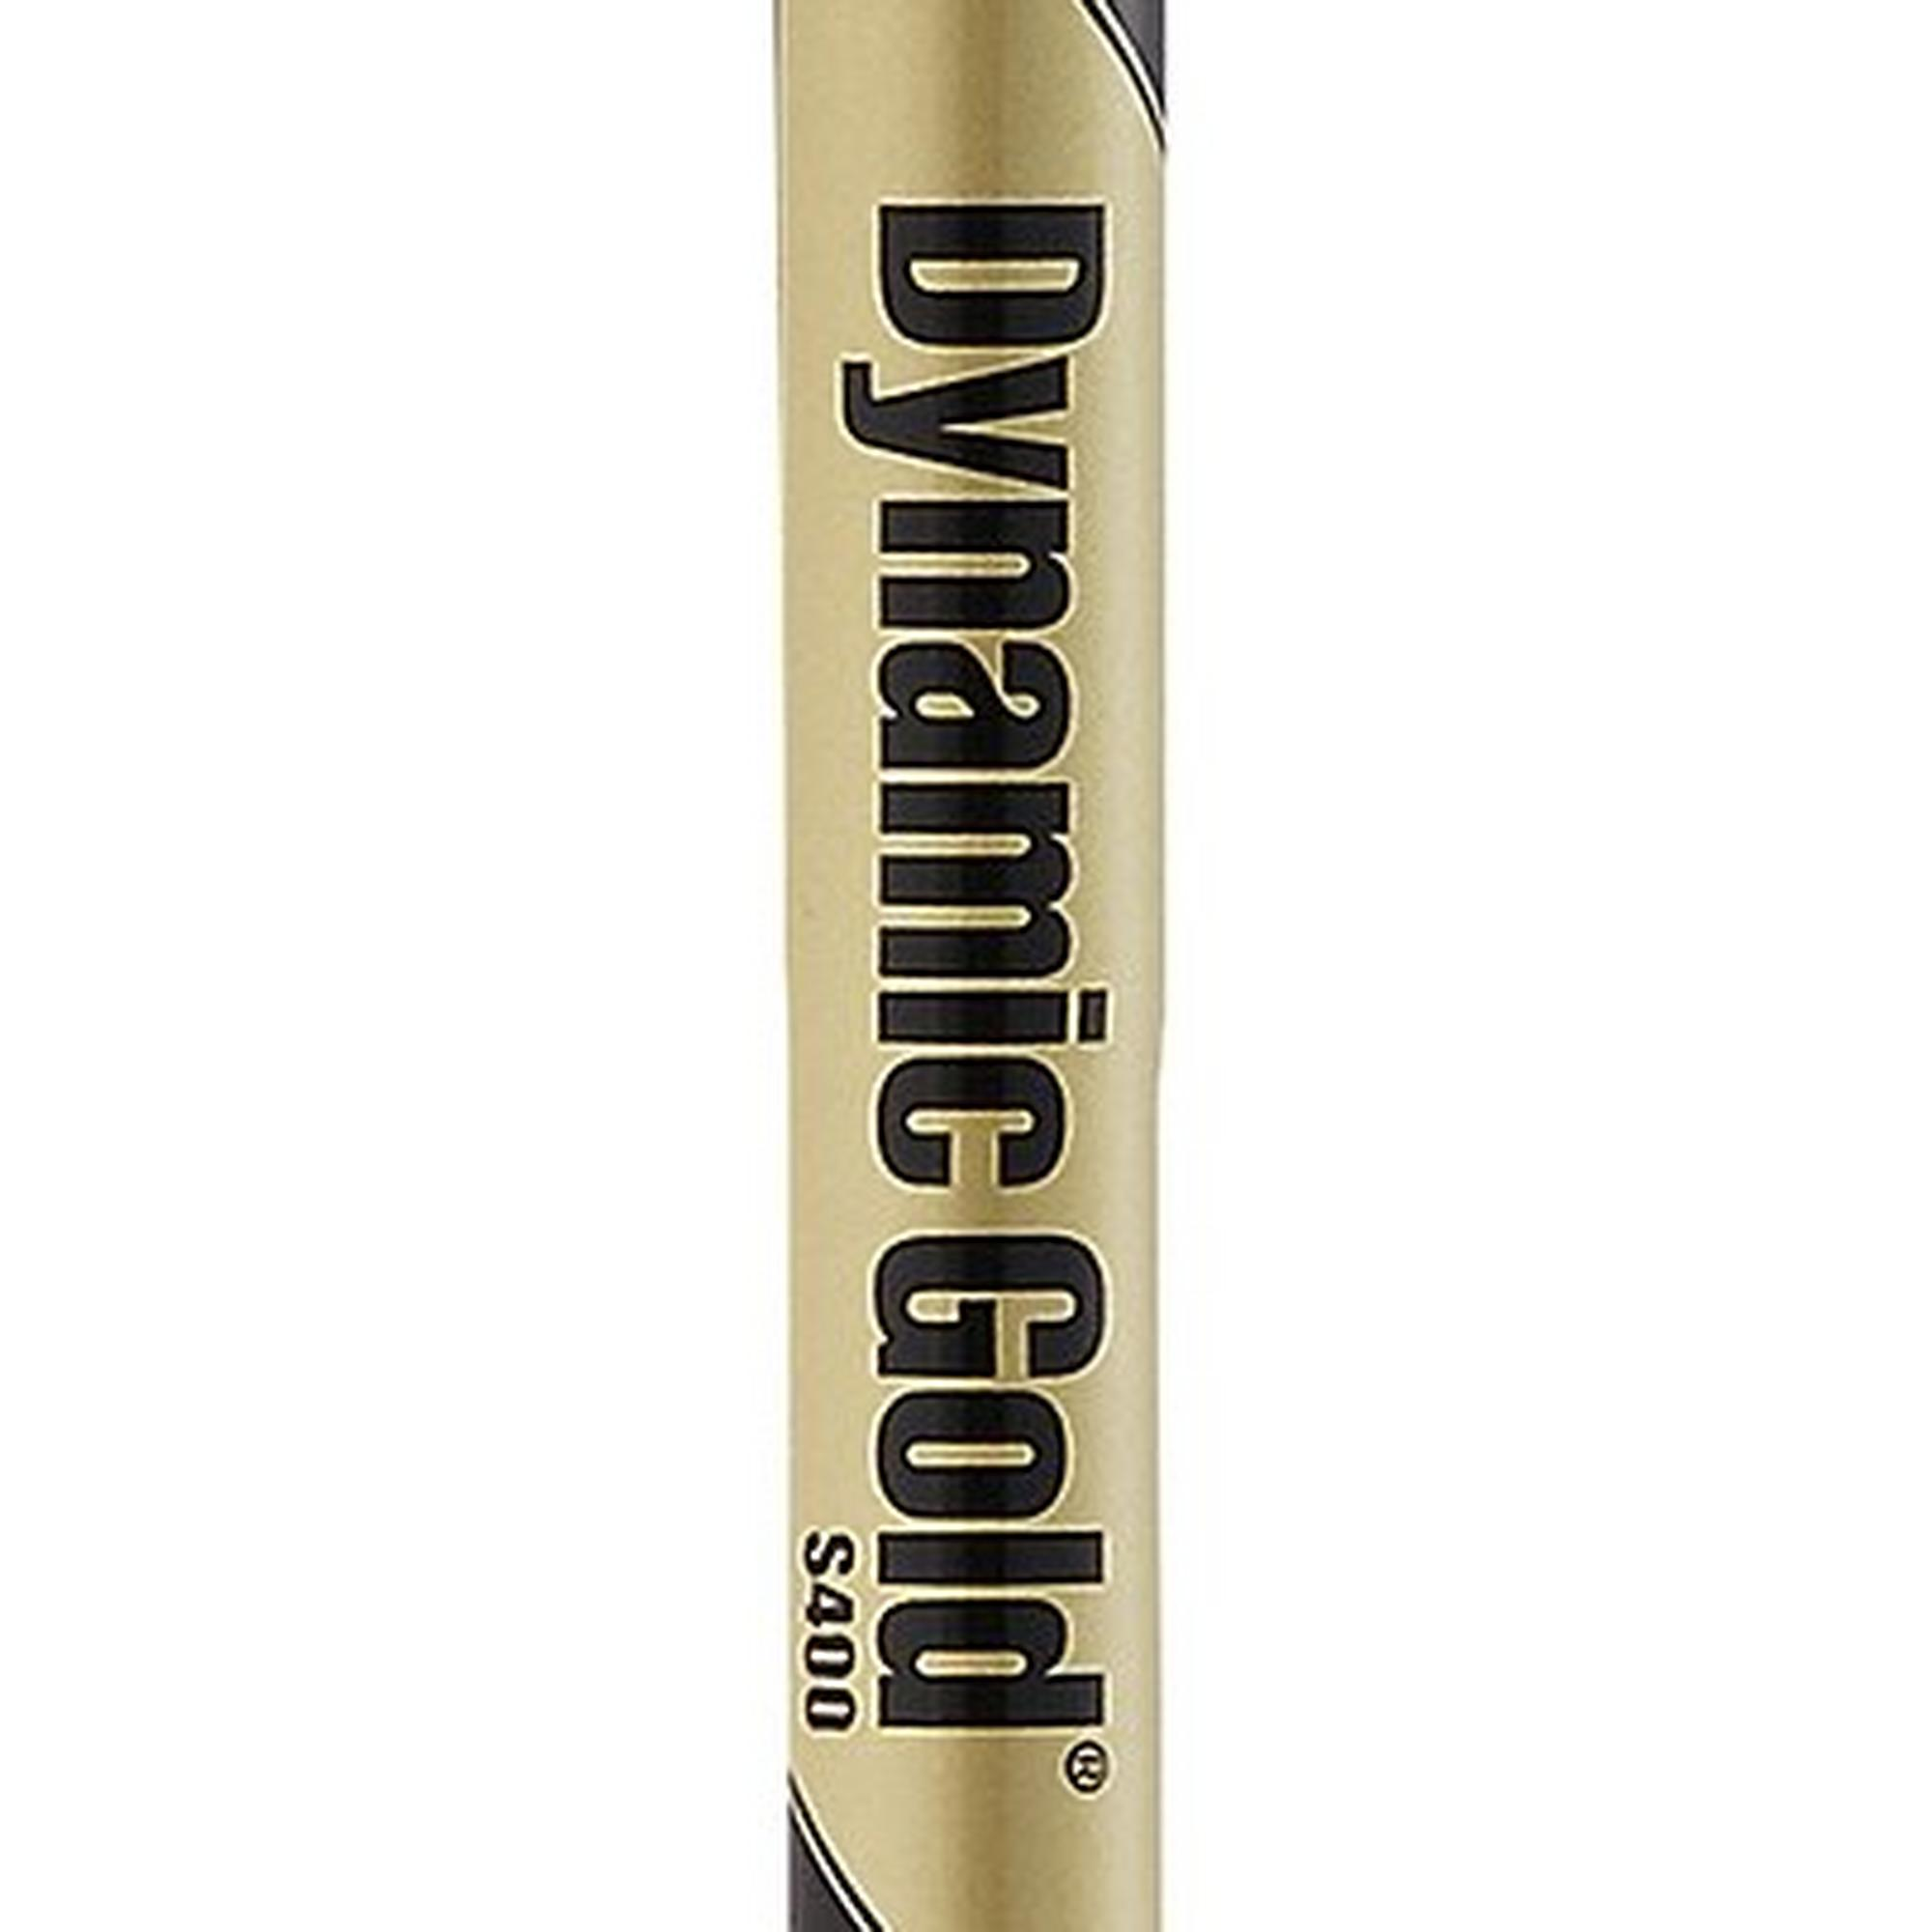 Dynamic Gold Tour Issue Onyx Steel Wedge Shaft